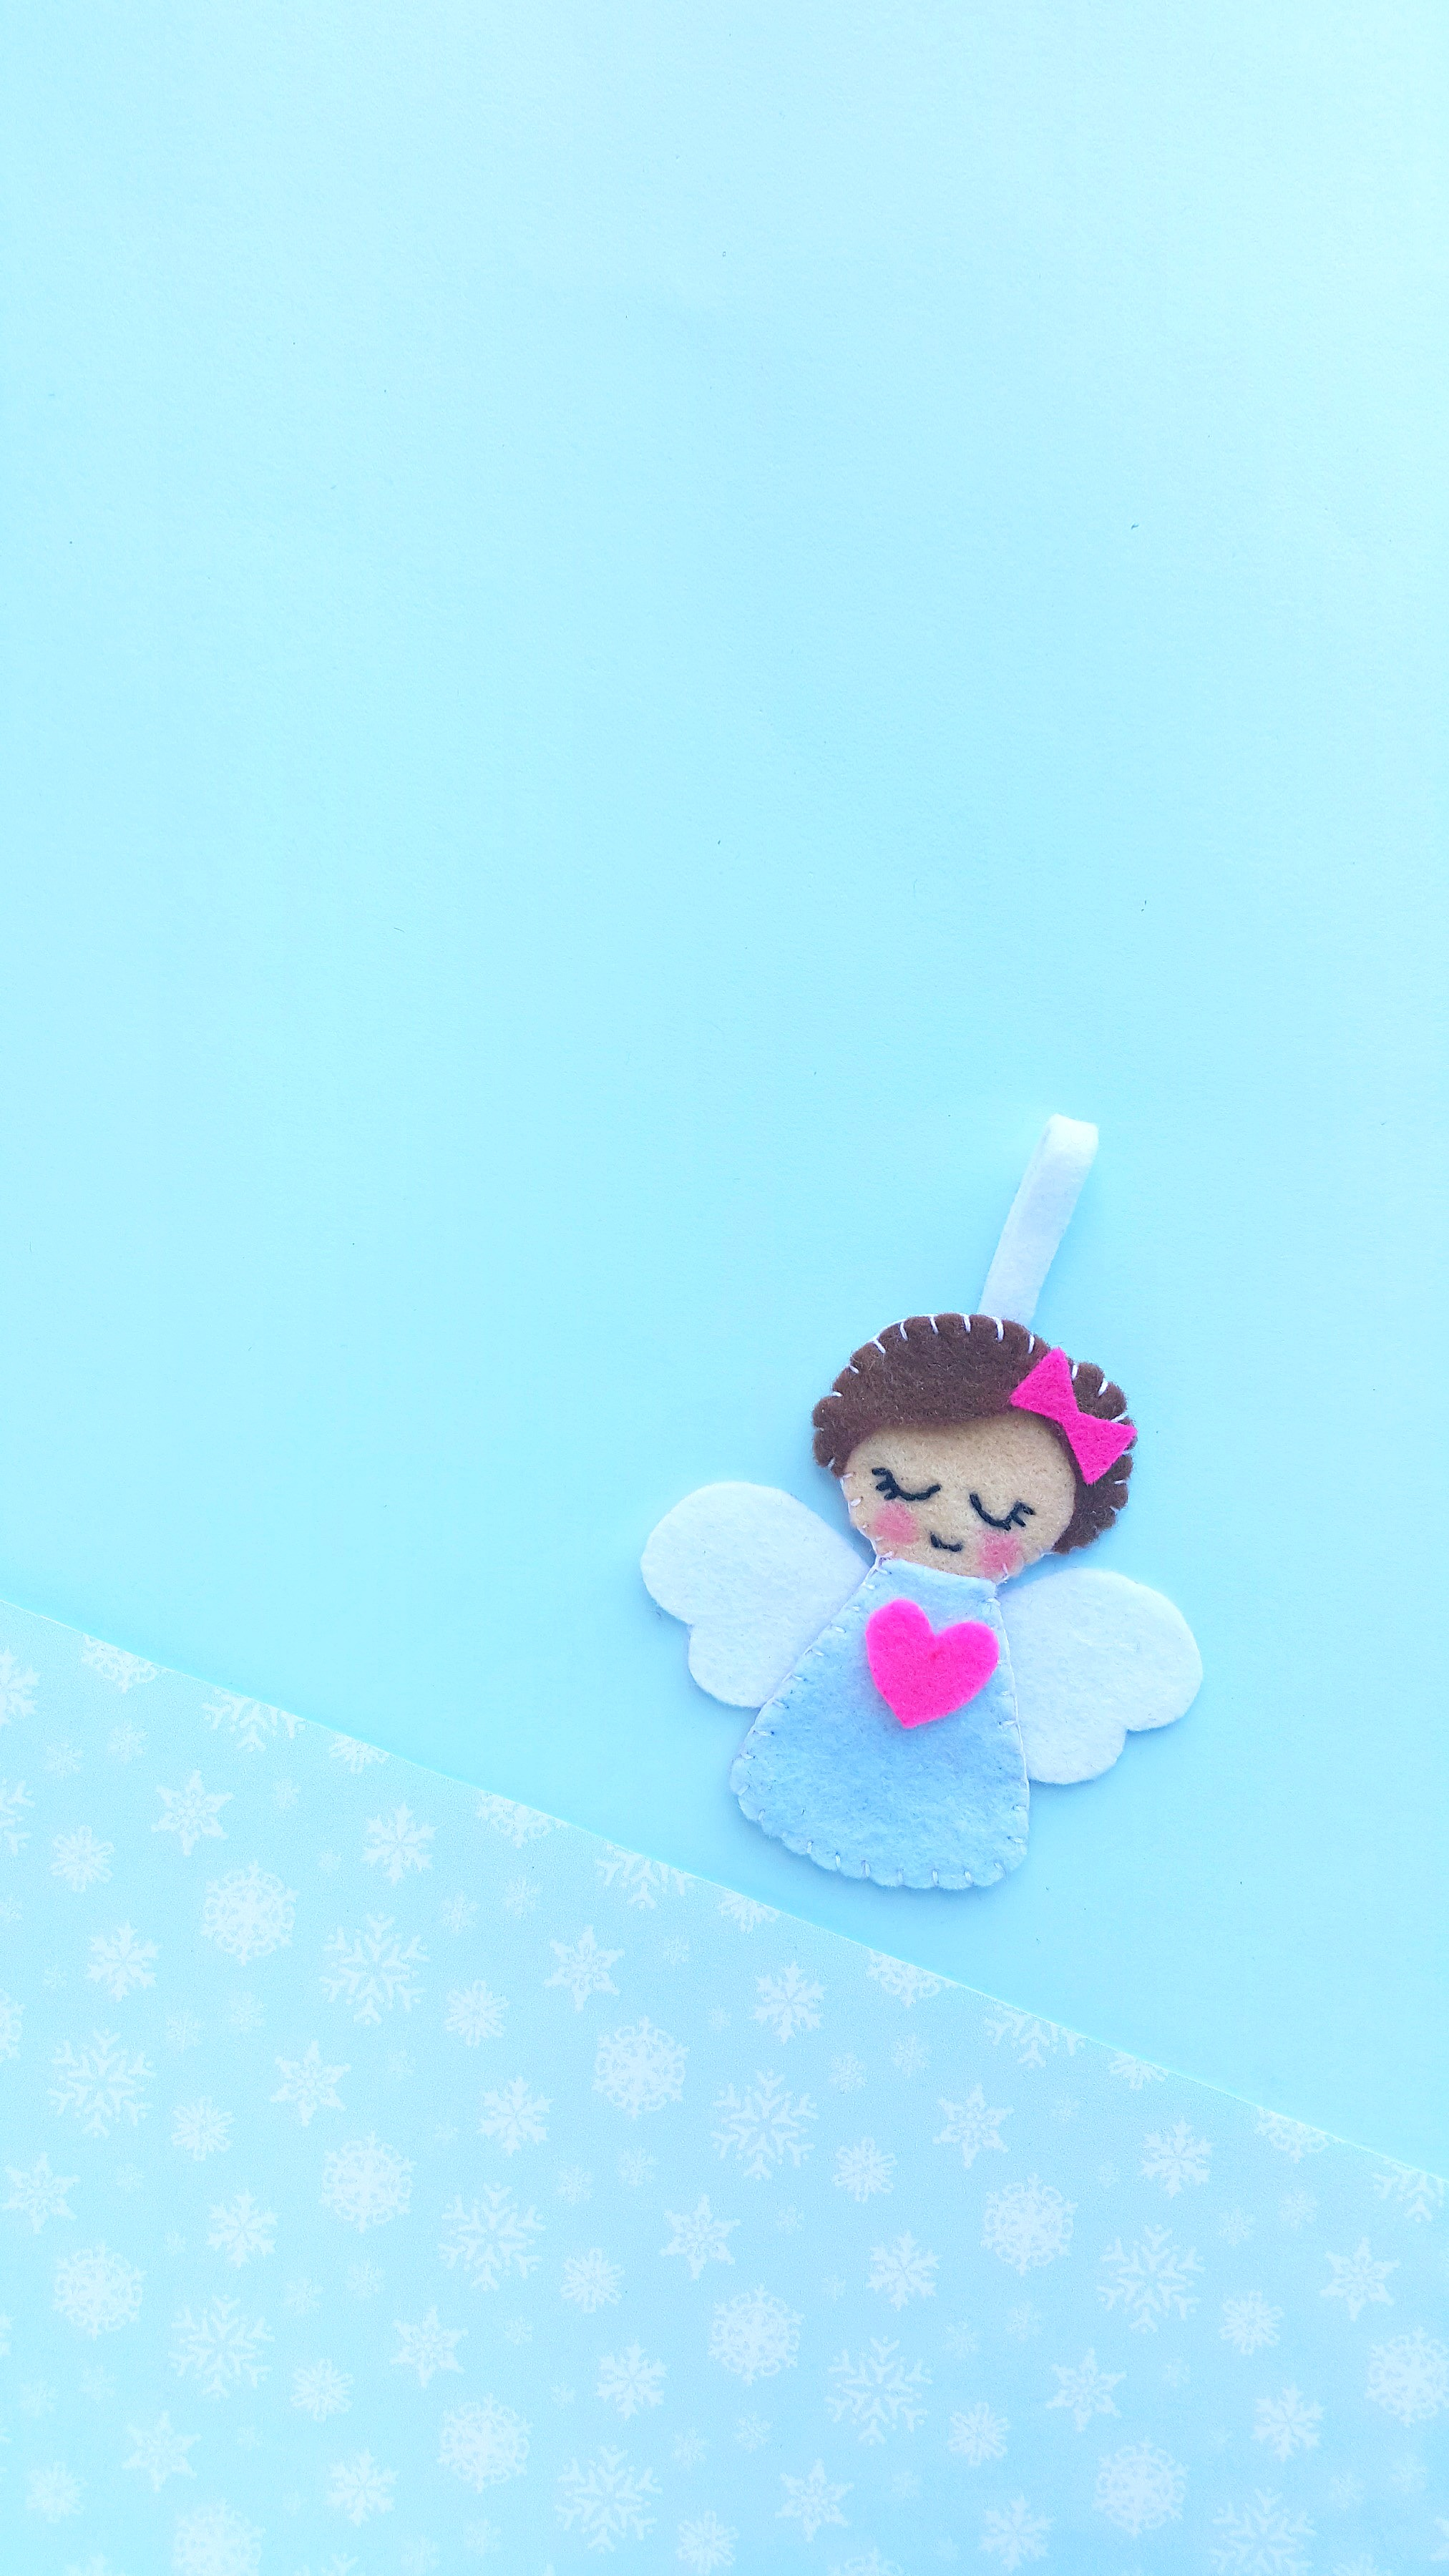 Felt angel with pink heart on dress, brown hair with a pink bow against a blue background.